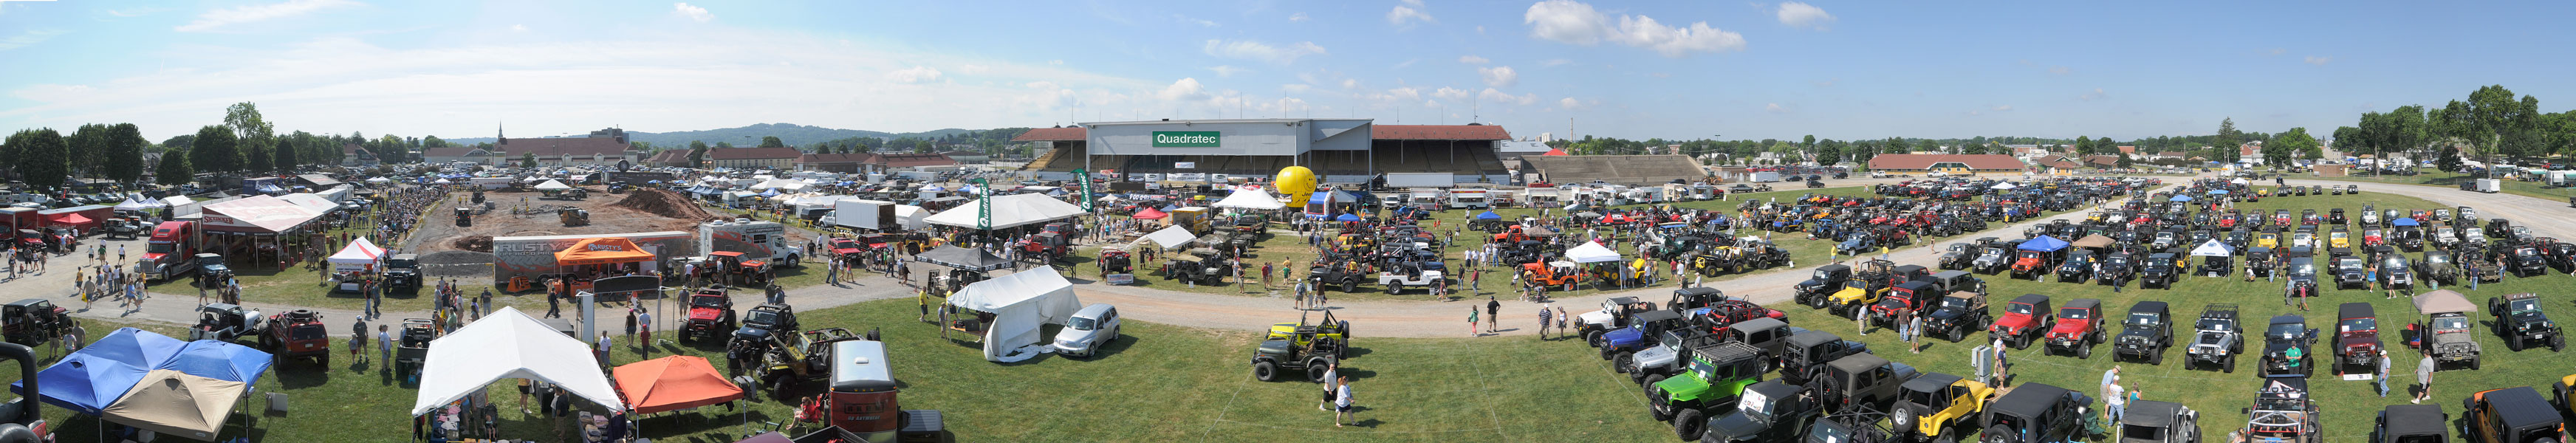 The 17th Annual All Breeds Jeep Show